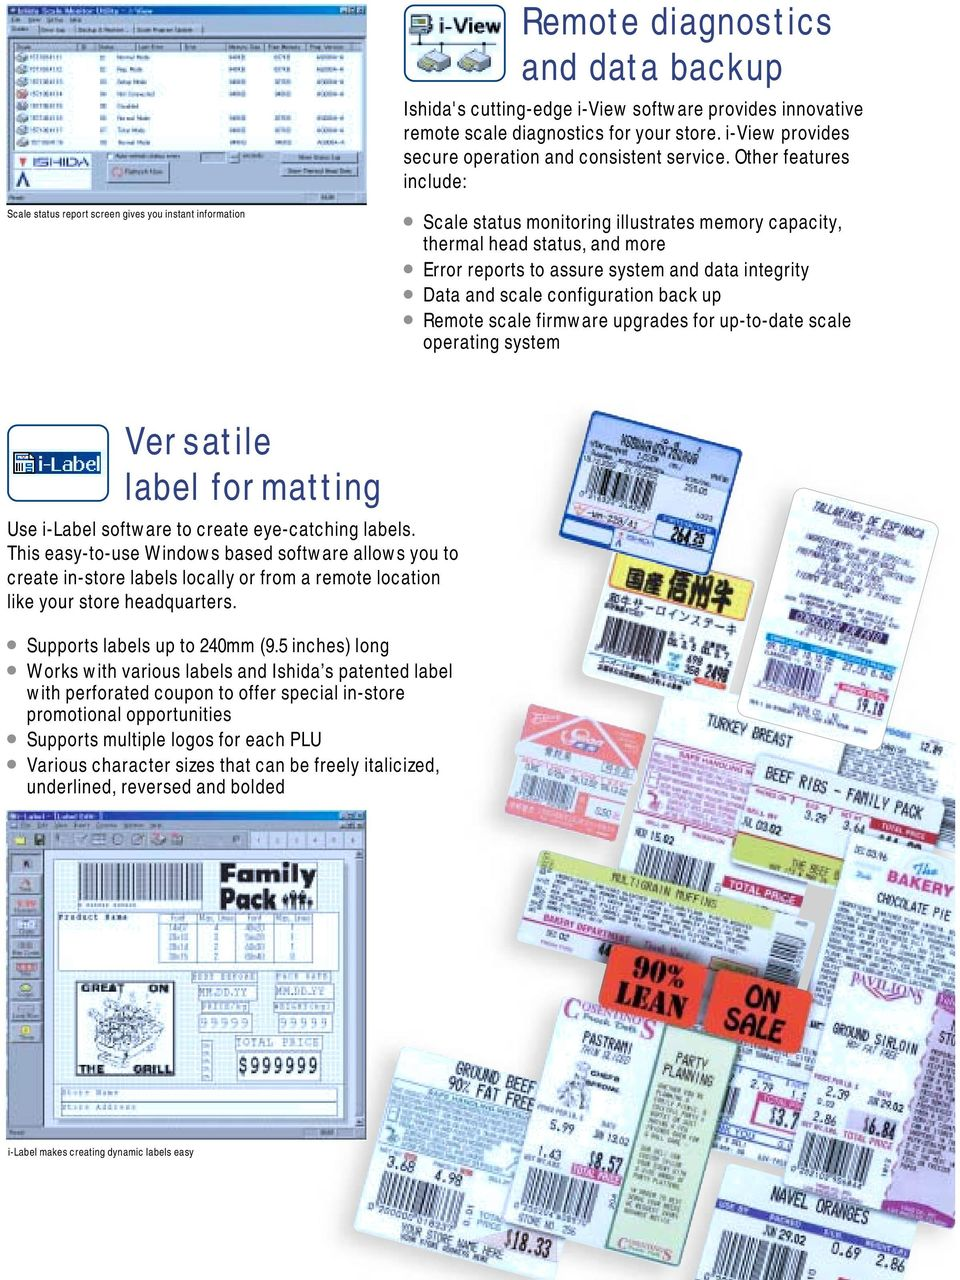 data integrity Data and scale configuration back up Remote scale firmware upgrades for up-to-date scale operating system Versatile label formatting Use i-label software to create eye-catching labels.